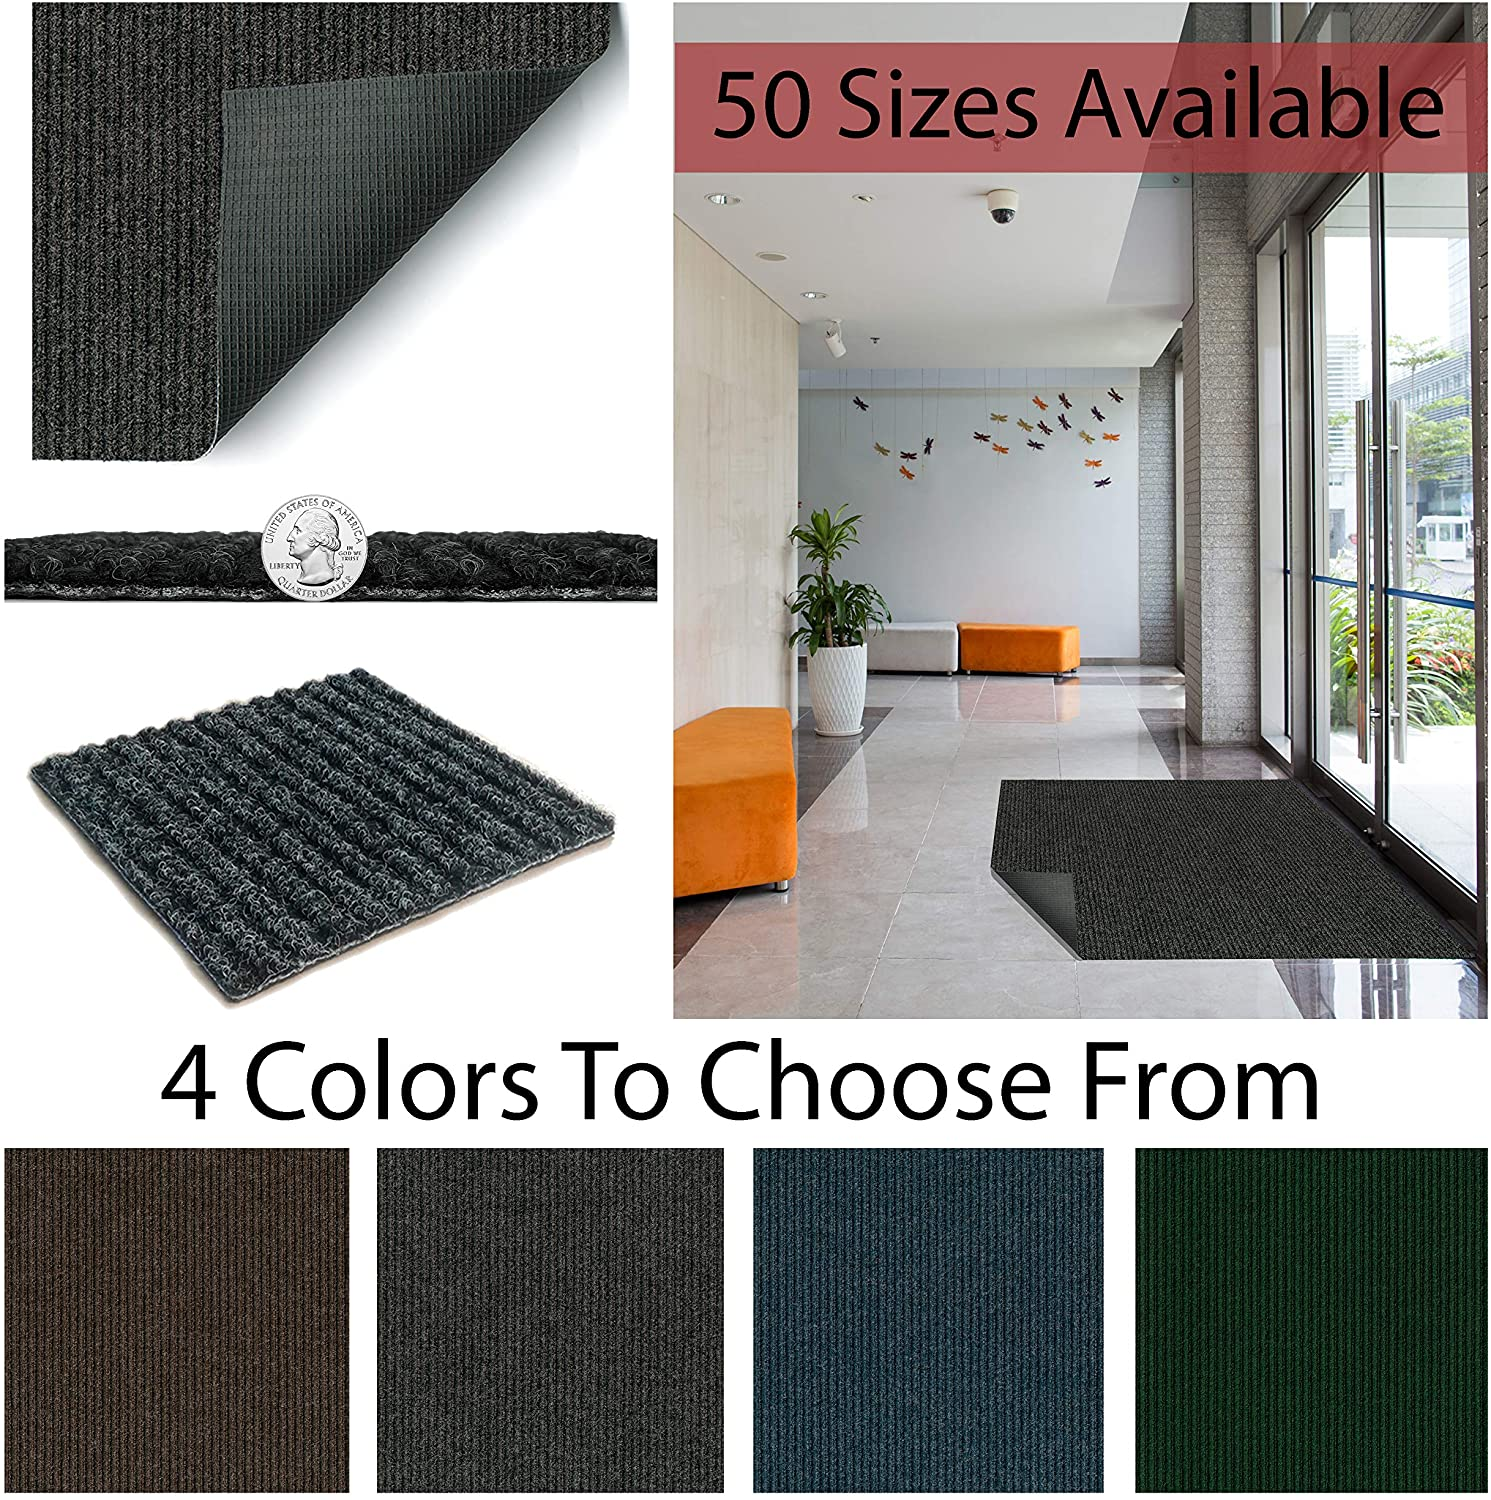 4' X 8' Heavy Duty Durable All Weather Indoor/Outdoor Non